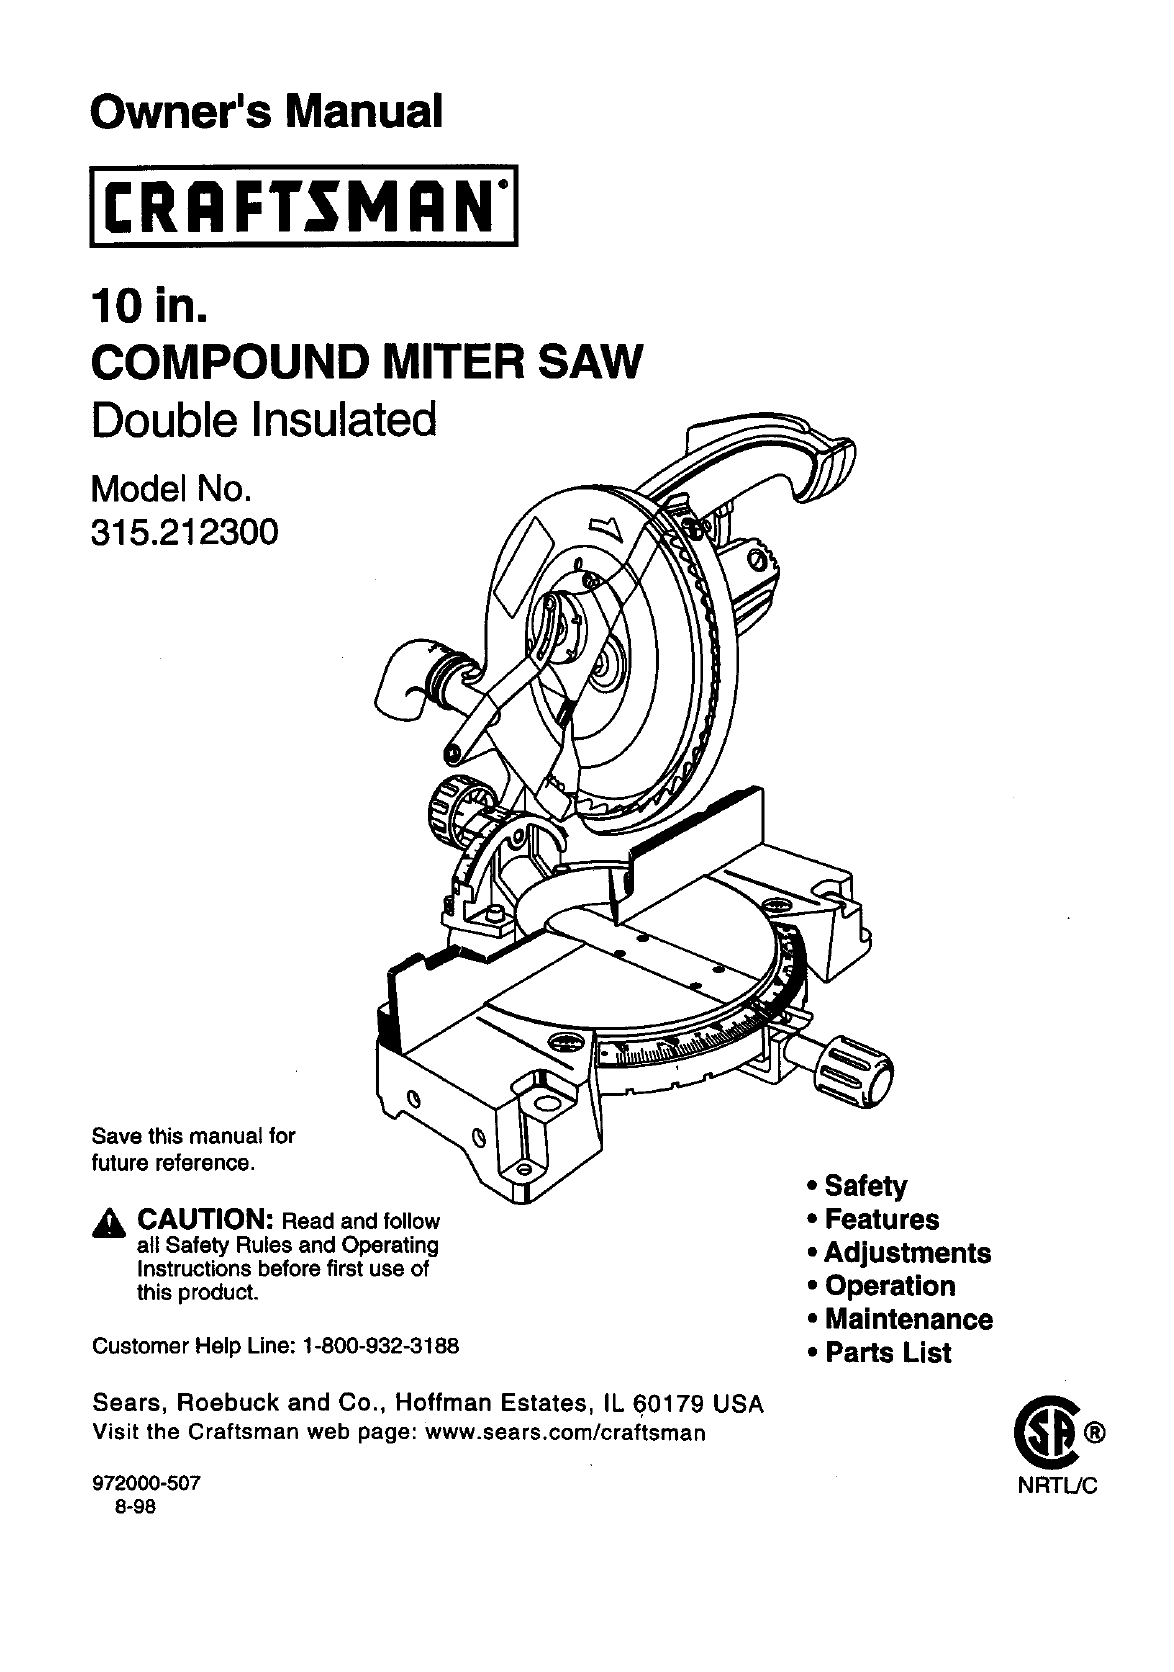 craftsman 315212300 user manual compound miter saw manuals and guides  99030706  usermanual.wiki